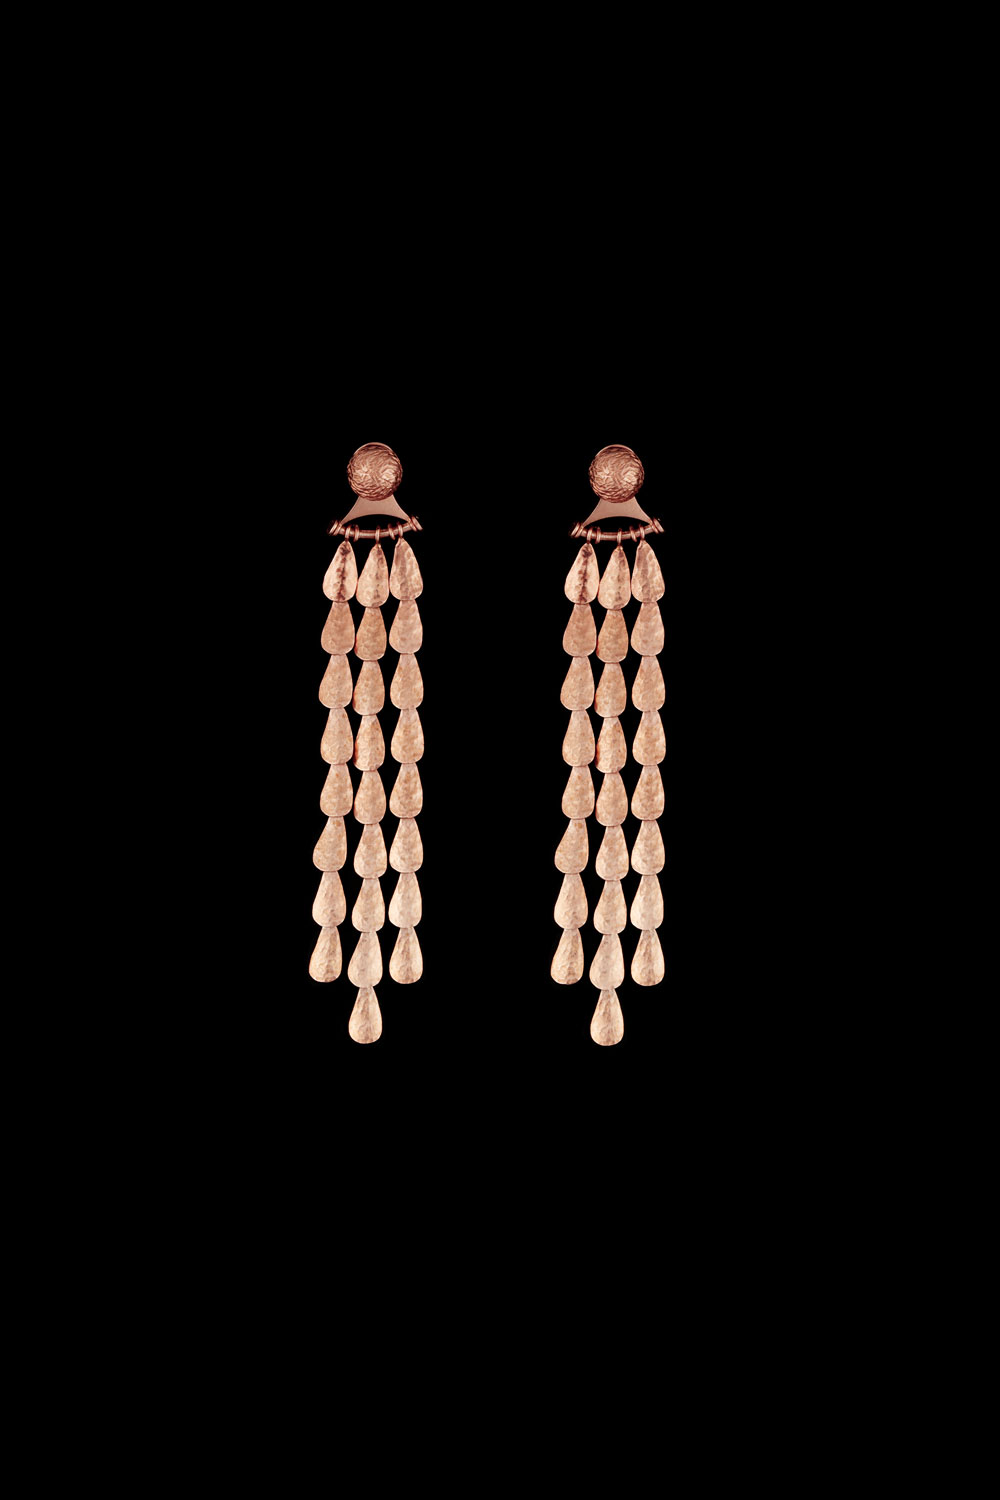 Earrings - Lunar Drops